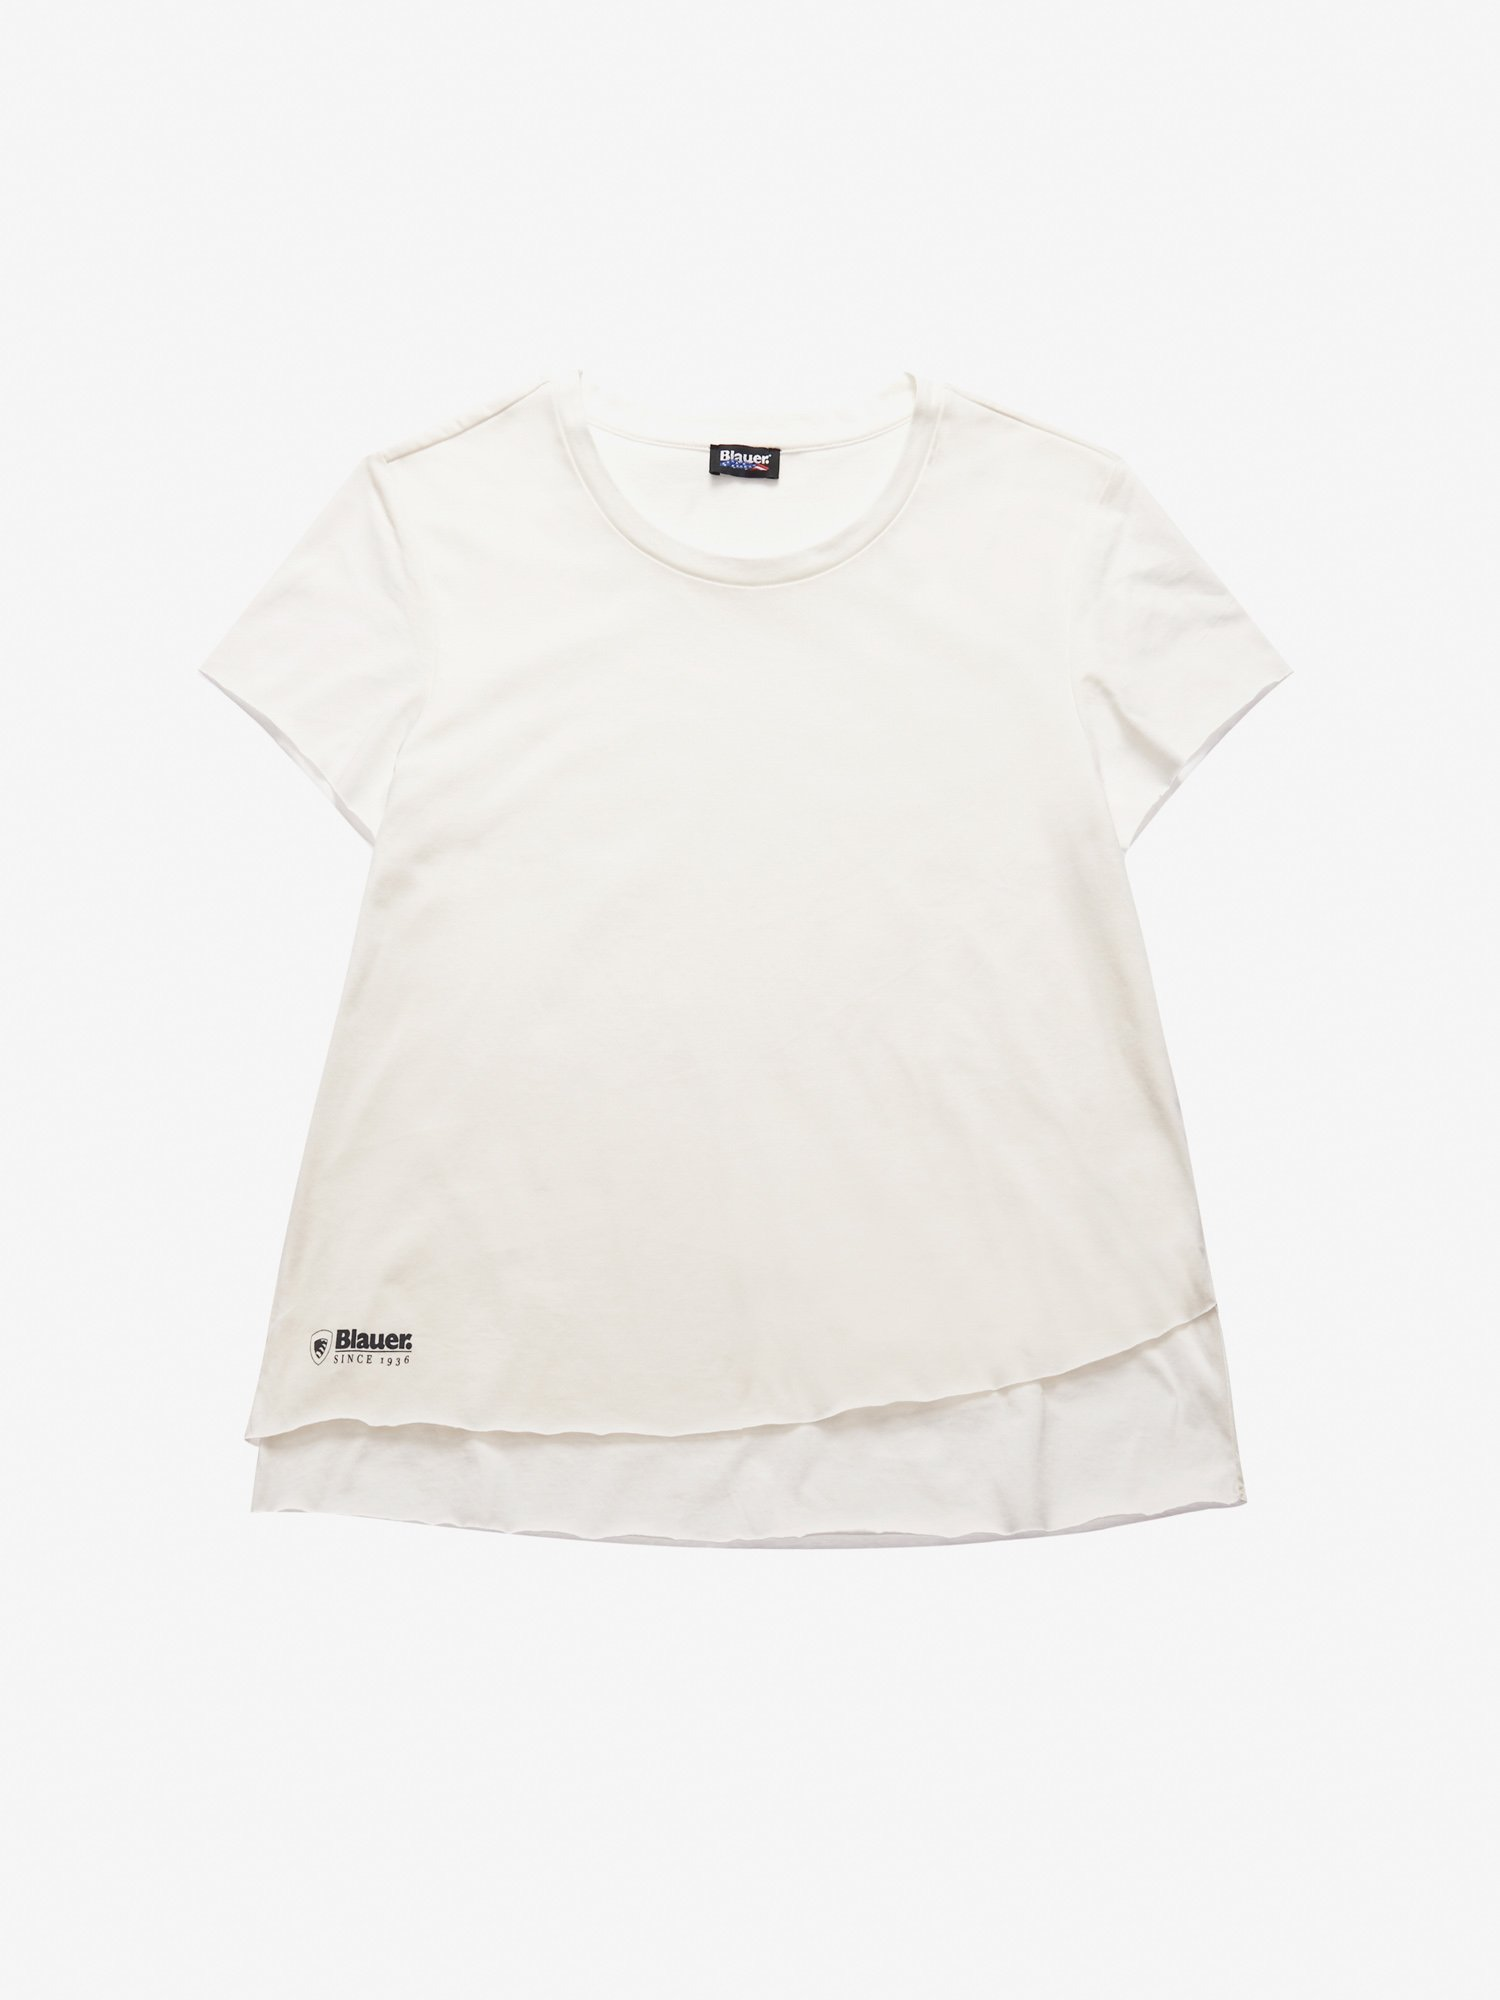 Blauer - DOUBLE COTTON T-SHIRT - Ivory - Blauer